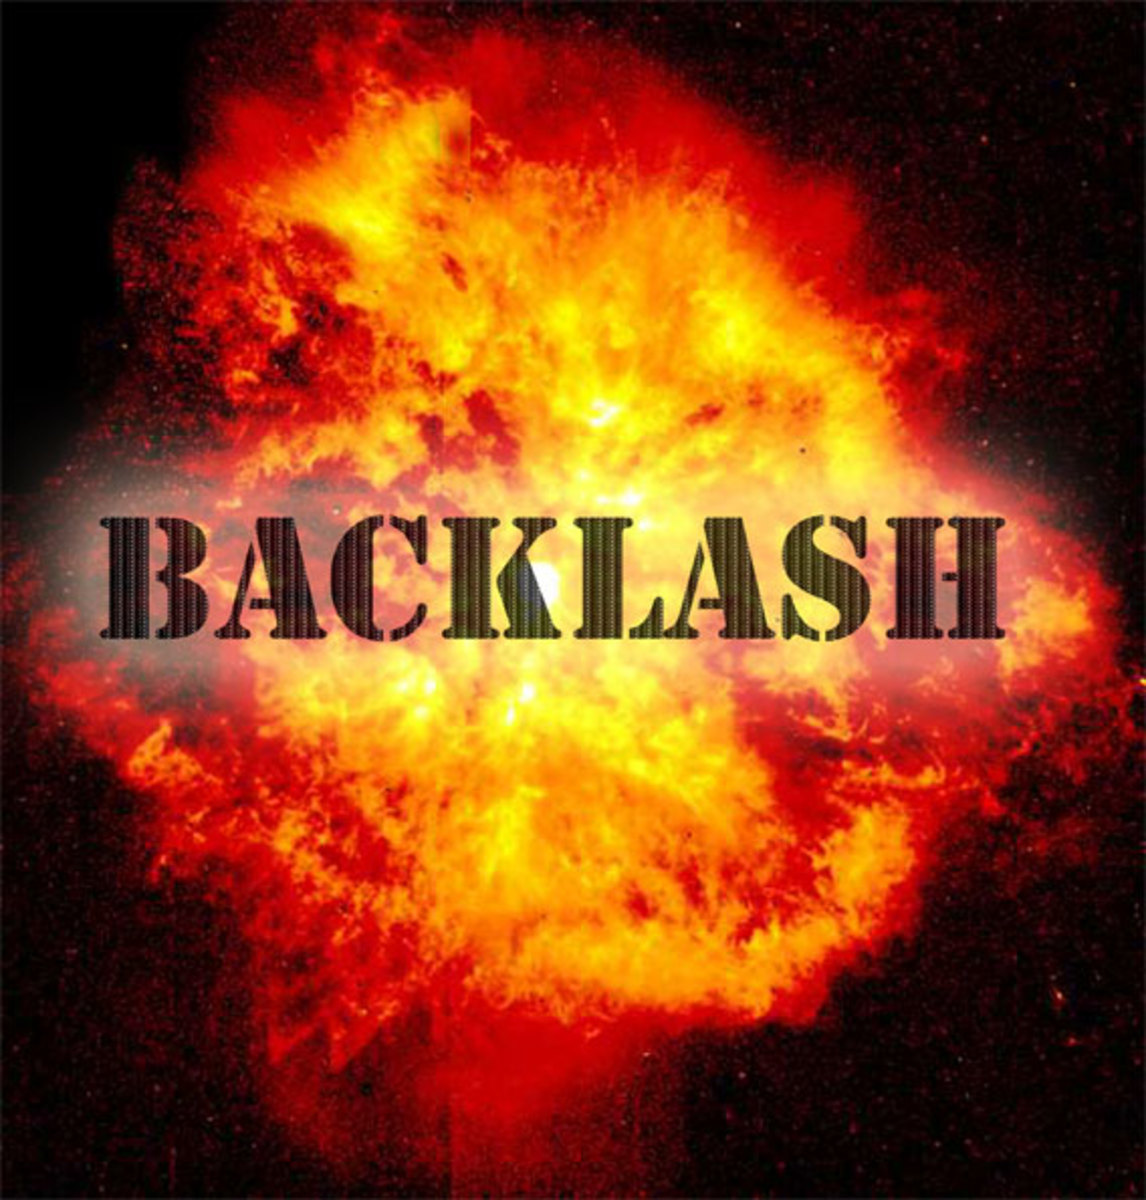 Backlash & Victory